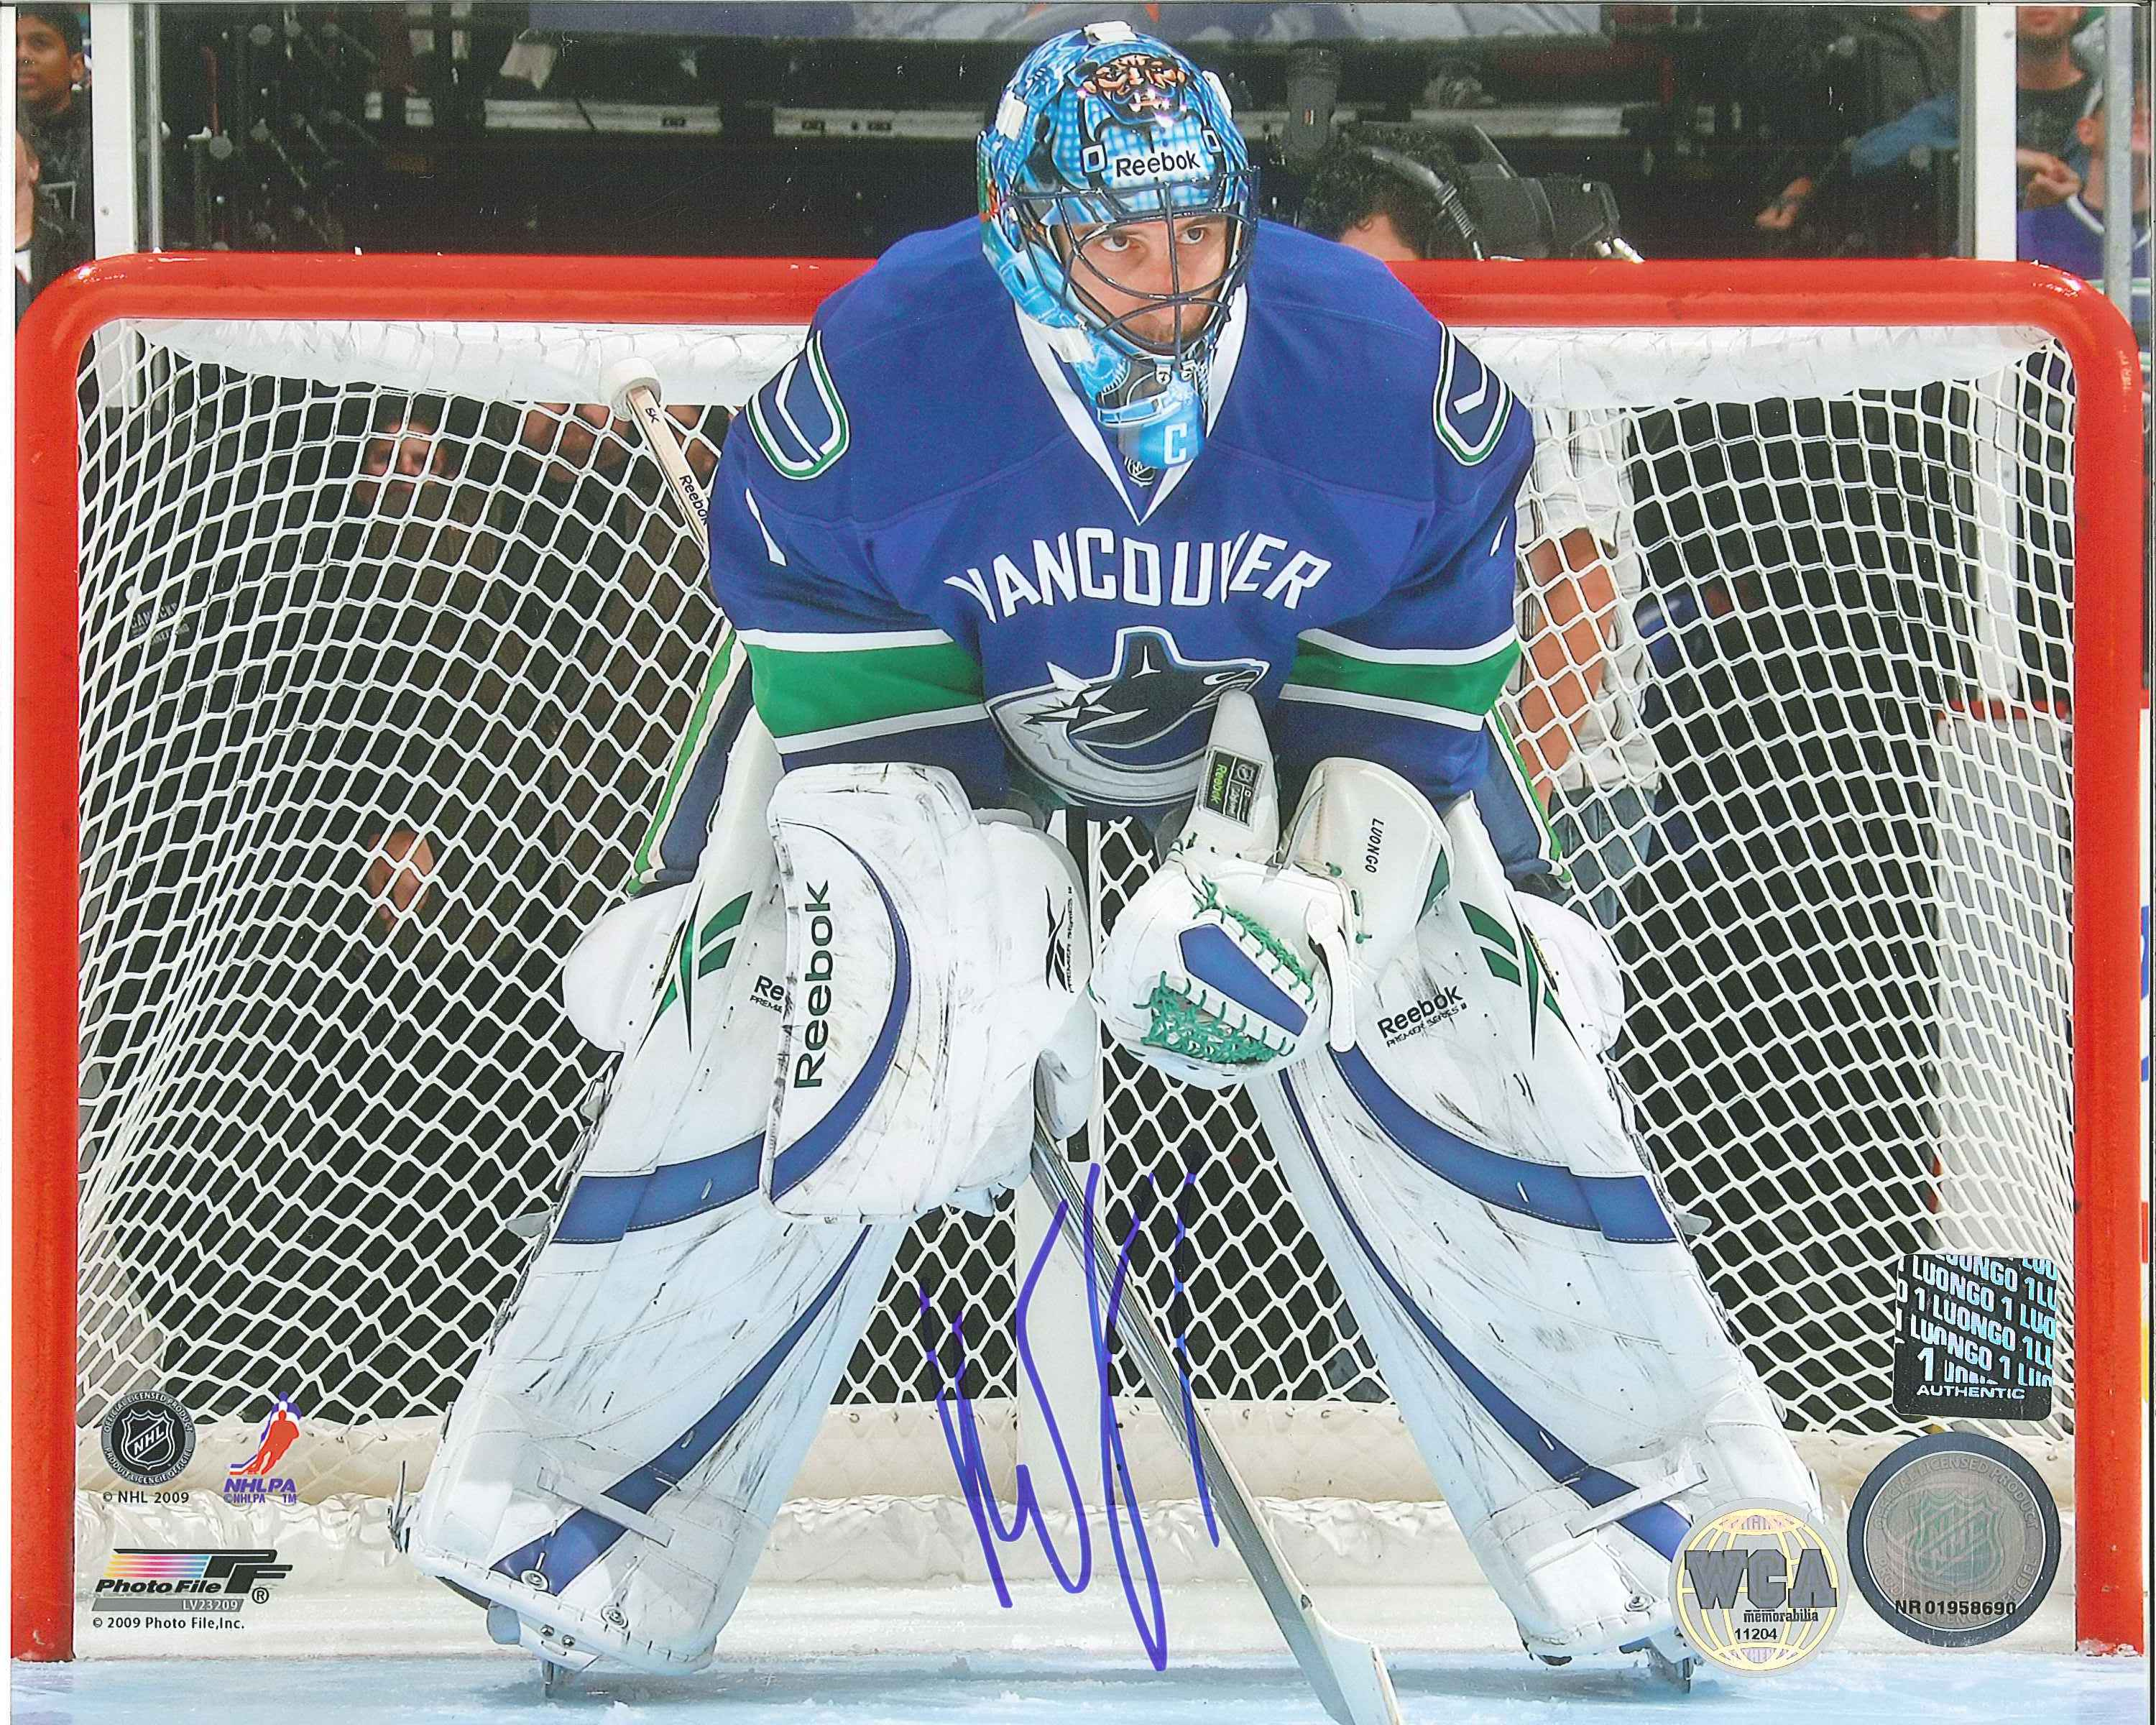 193e1c771 ... Roberto Luongo Autographed Vancouver Canucks 8 x 10 Photo.  West Coast Authentic NHL Canucks Roberto Luongo Autographed Photo(5)